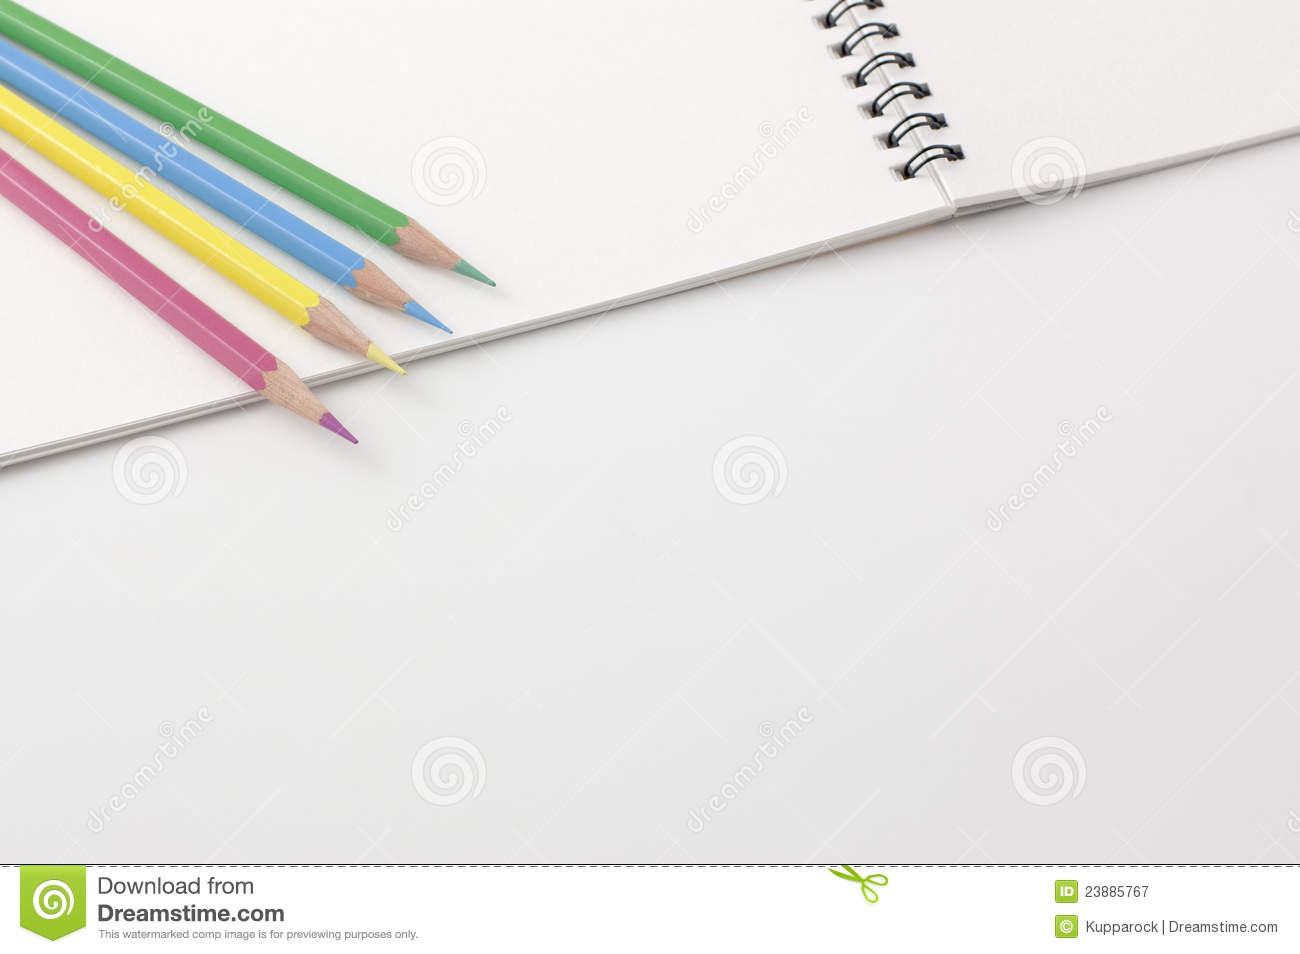 Notebook And Pen Sketch Stock Vector Art More Images Of: Sketchbook And Colored Pencils. Royalty Free Stock